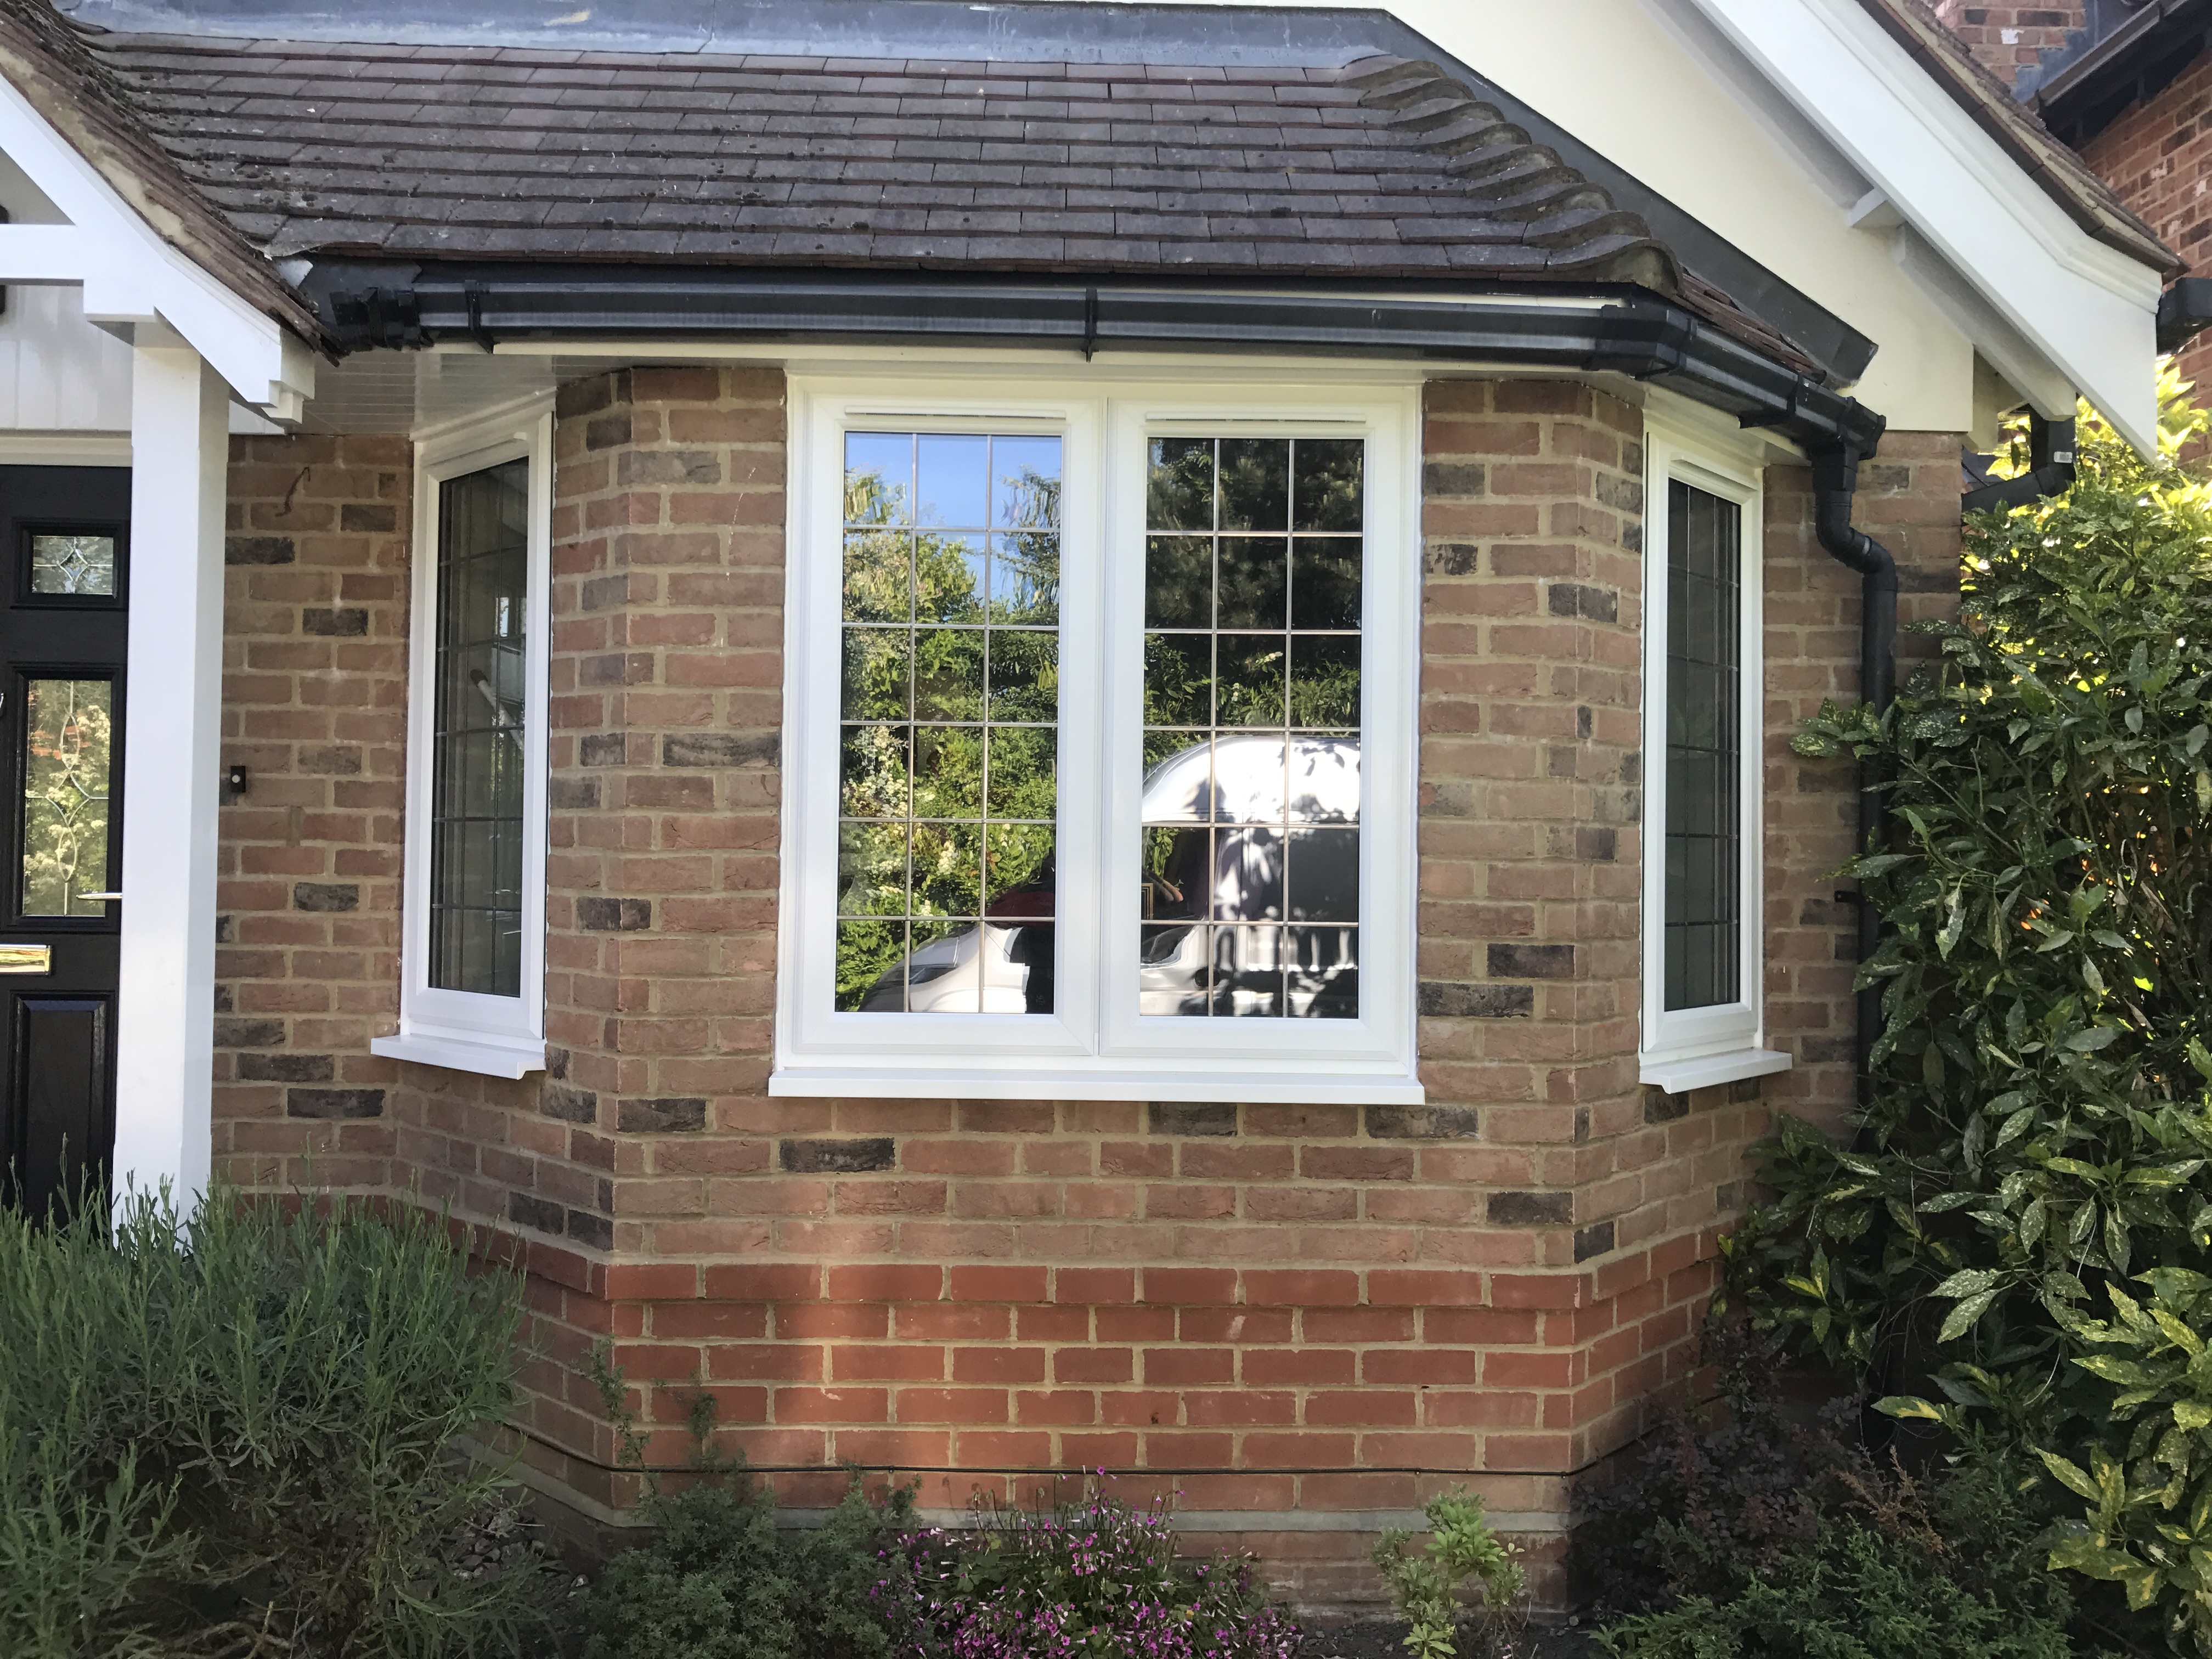 PVCu window with dummy sashes and trickle vents with square leads to private house